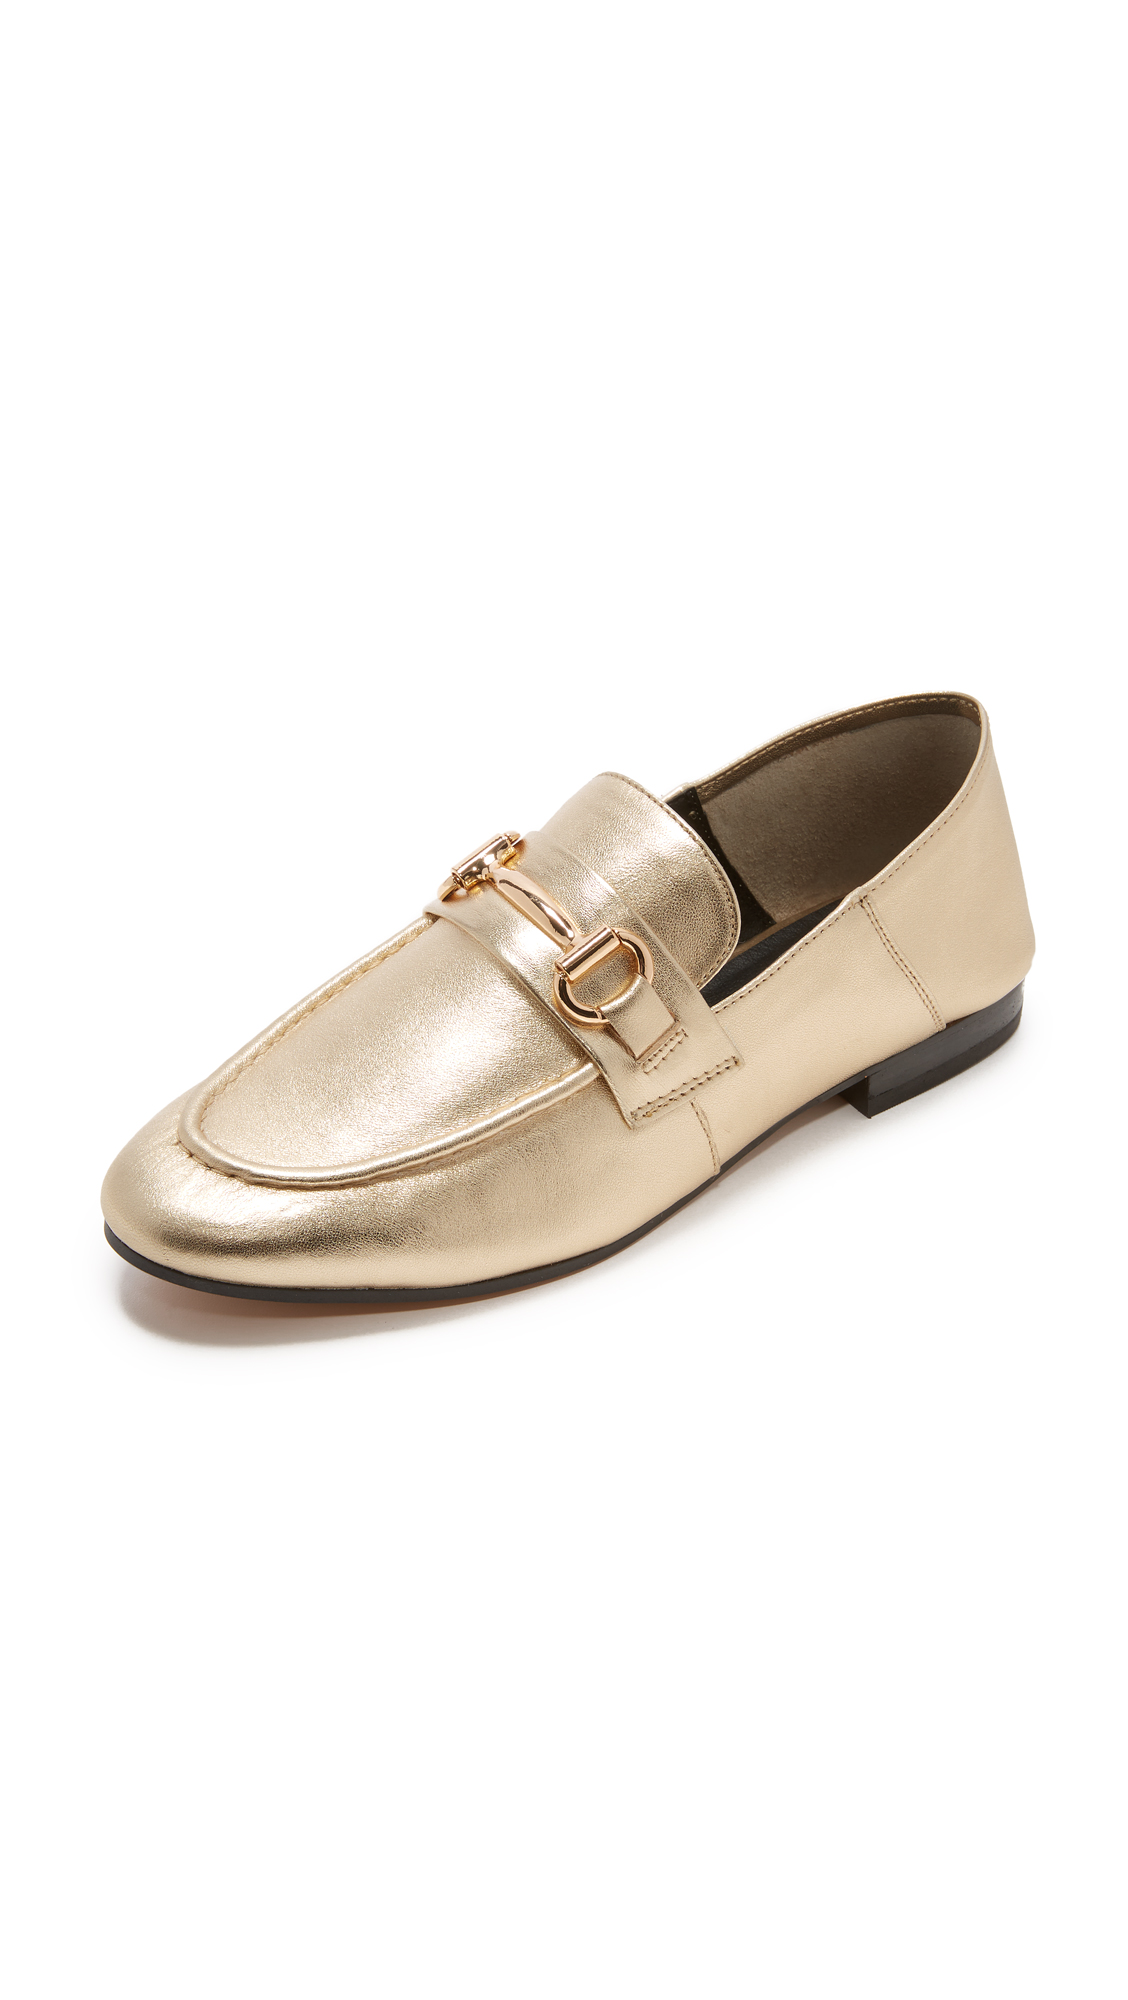 Steven Santana Convertible Loafers - Gold